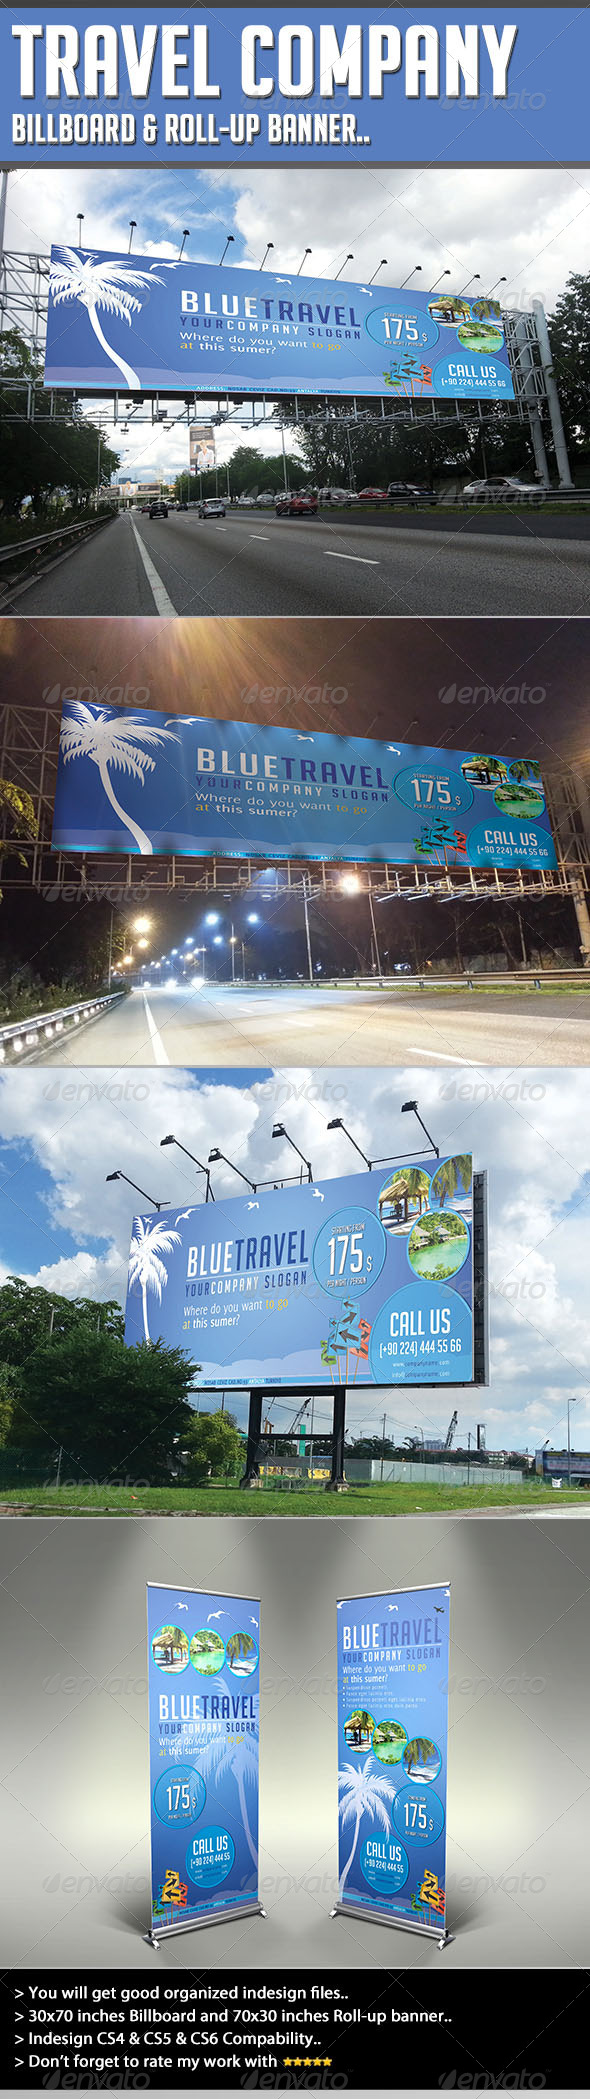 Travel Company - Billboard & Rollup Template - Signage Print Templates